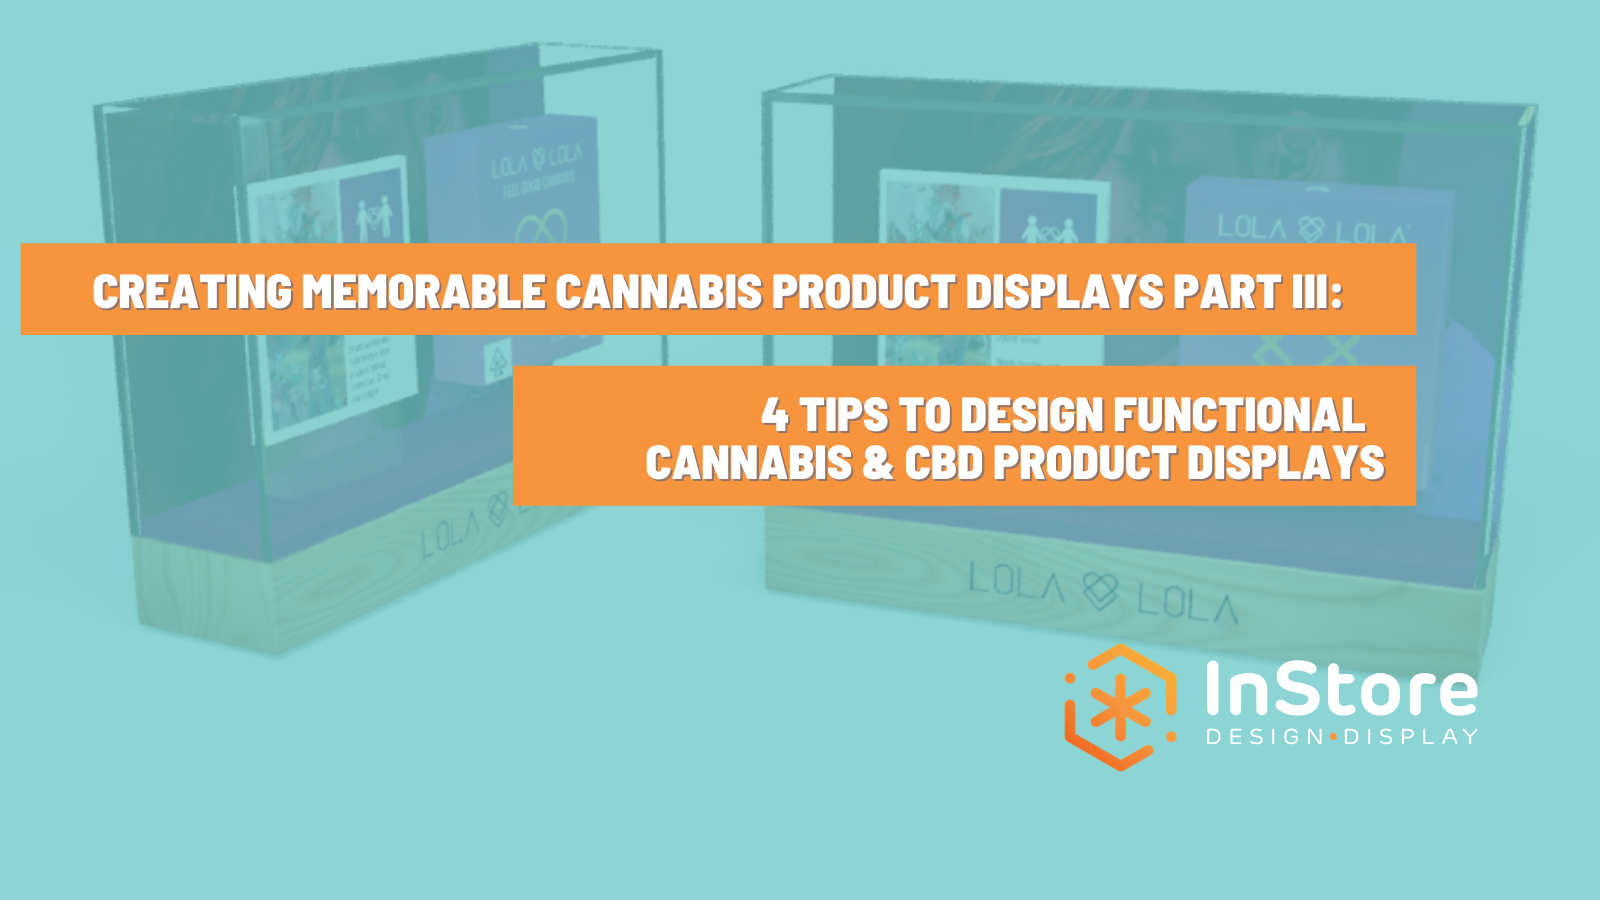 Part III: 4 Tips to Design Functional Cannabis & CBD Product Displays